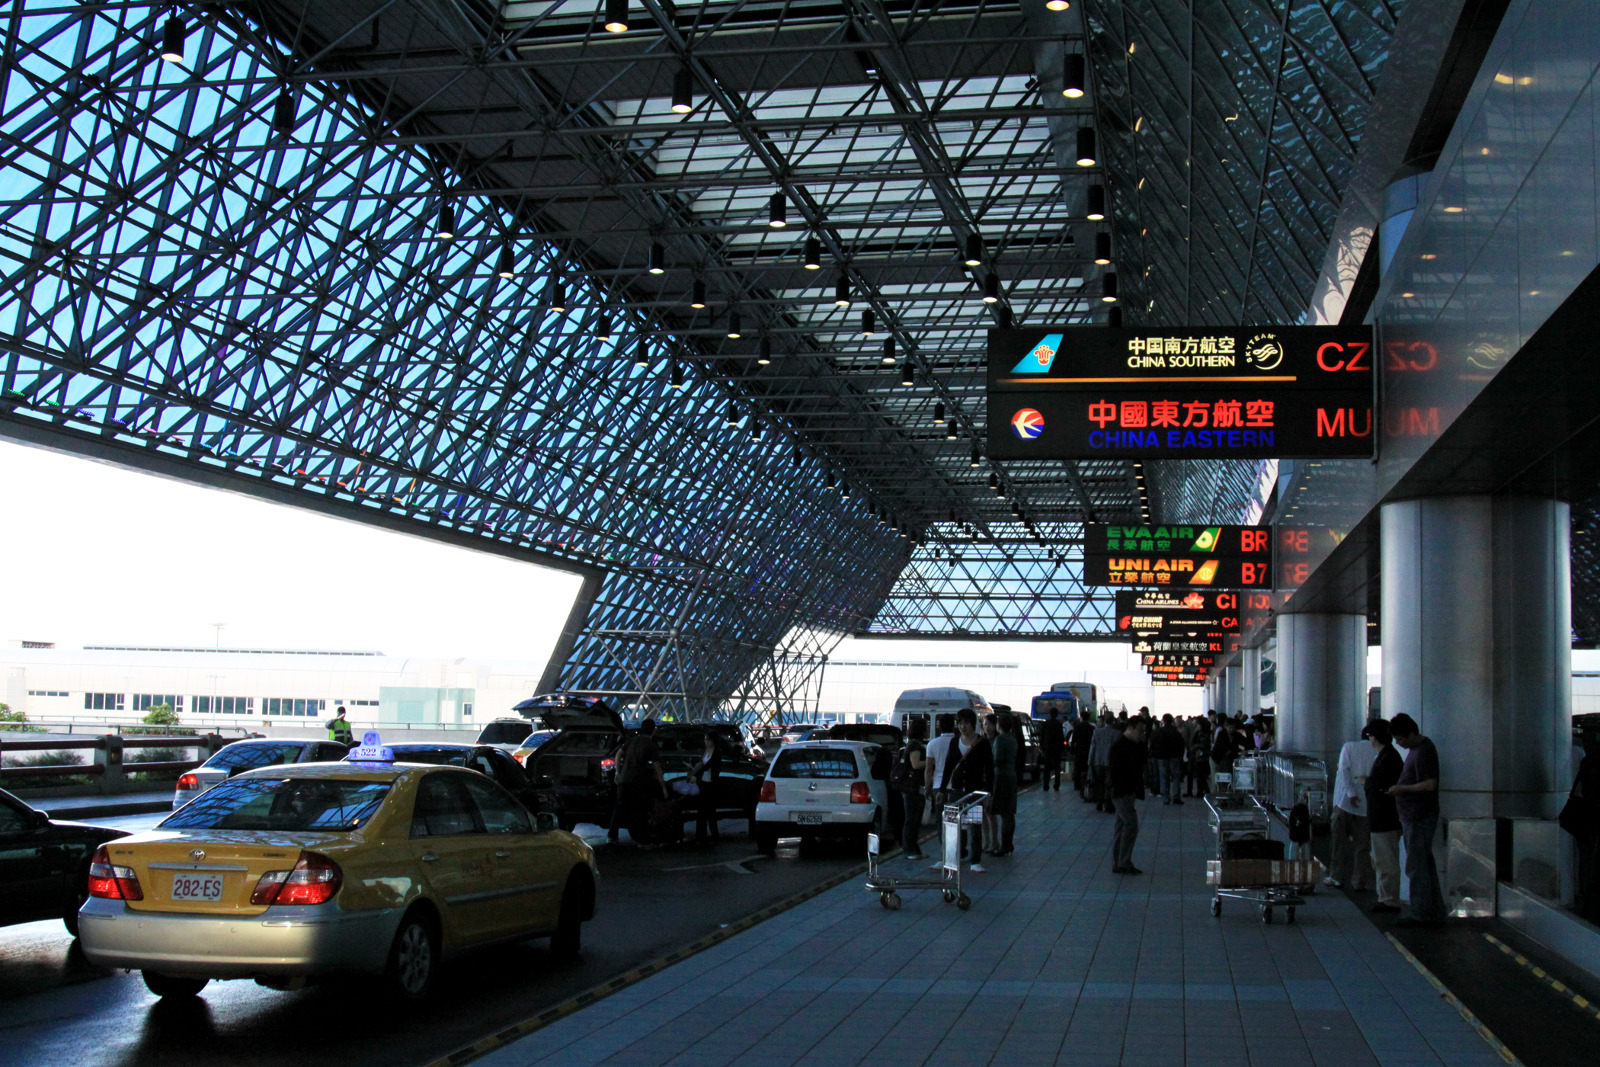 Taoyuan Airport Transfer to Taichung City